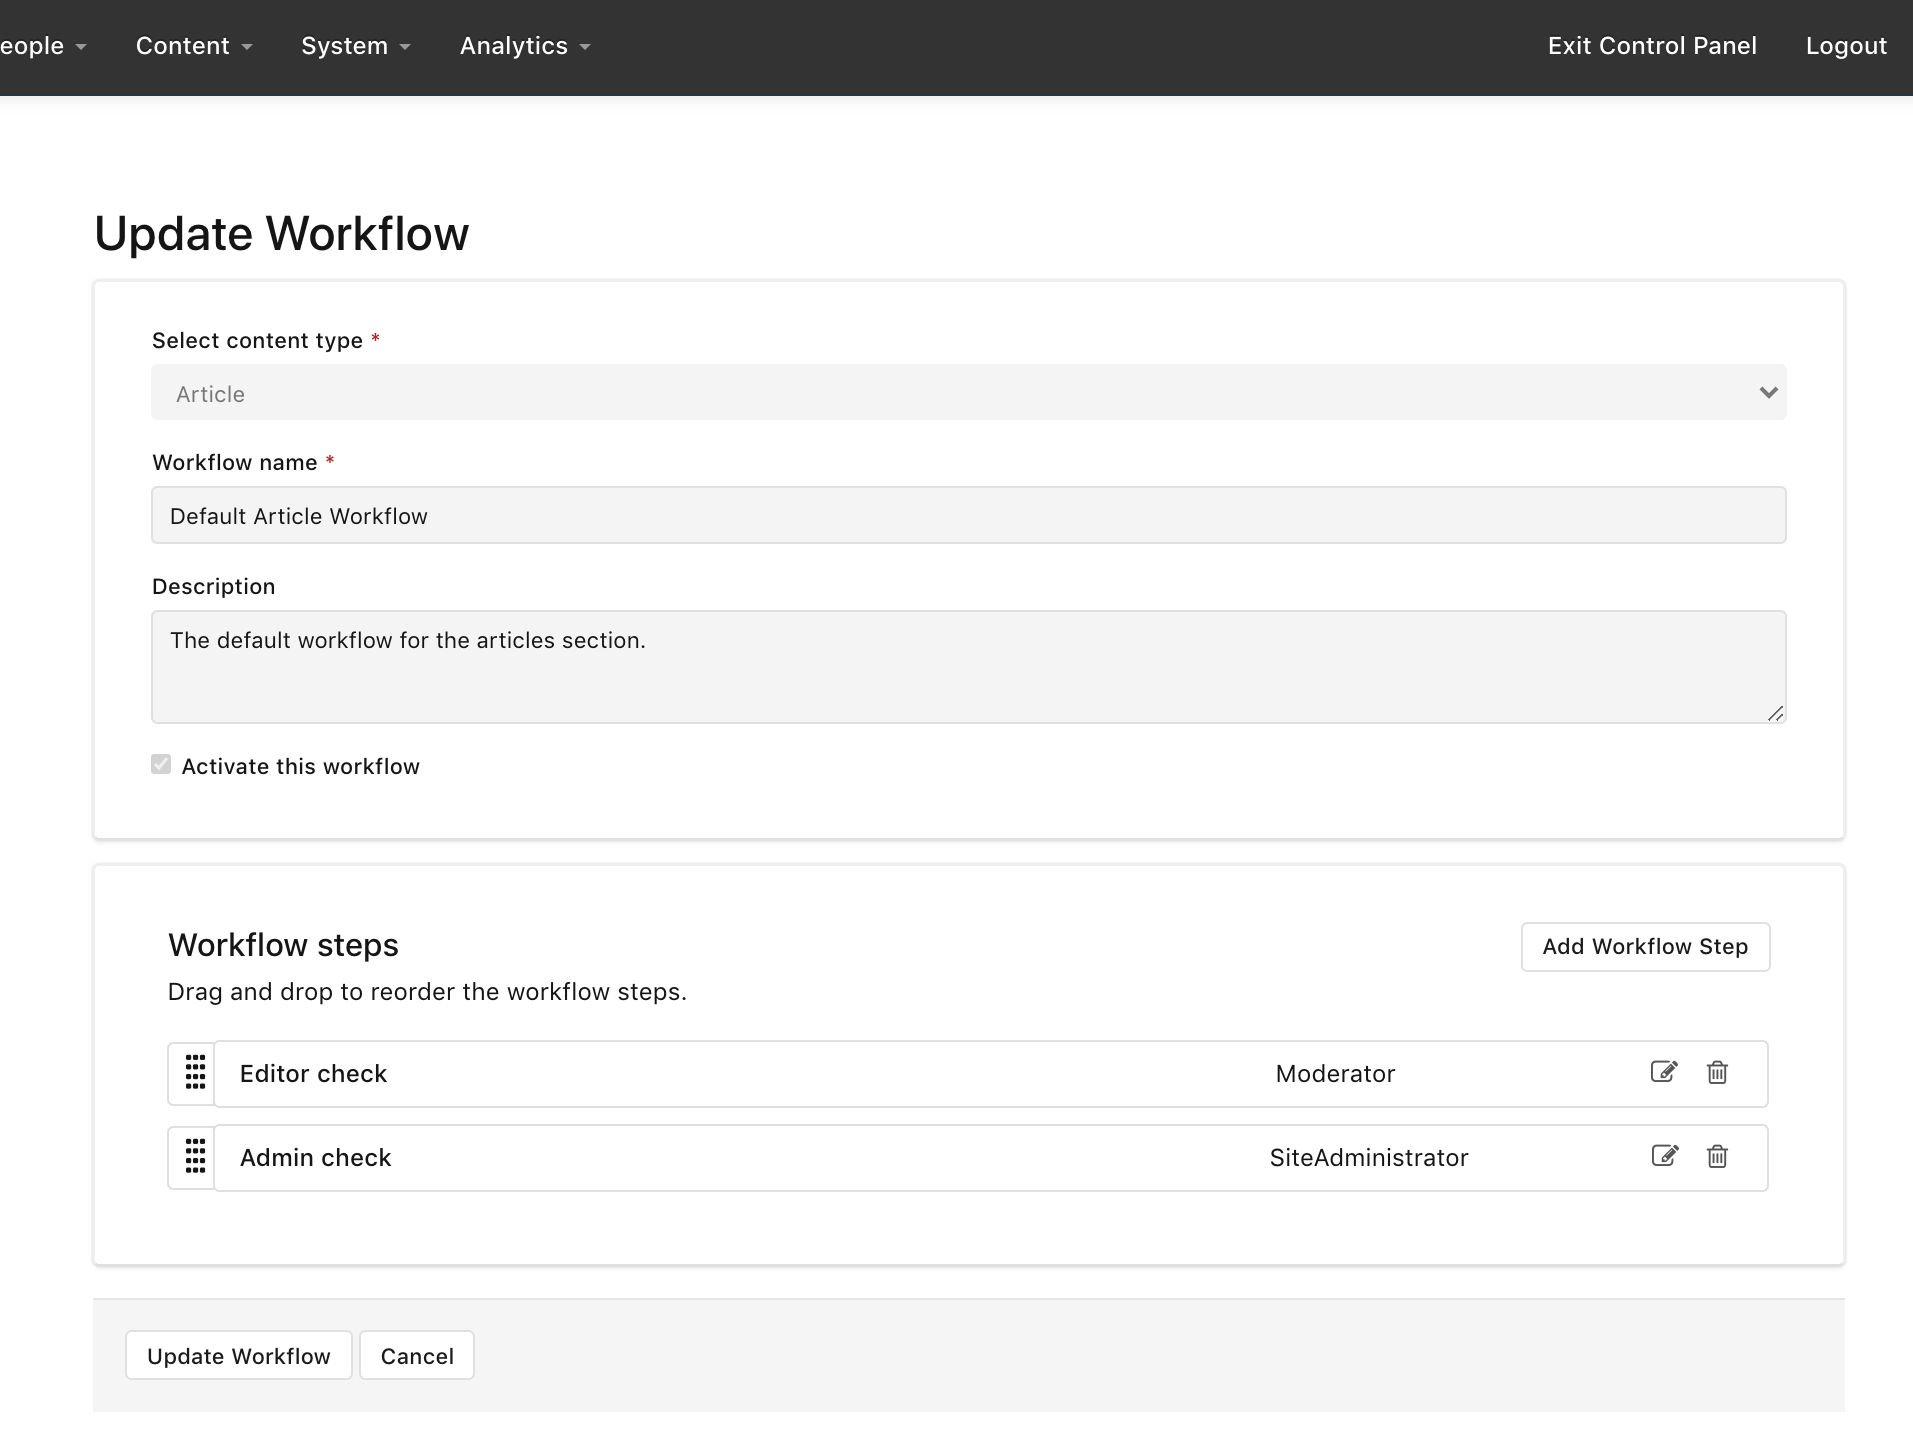 Update workflow in the Control Panel